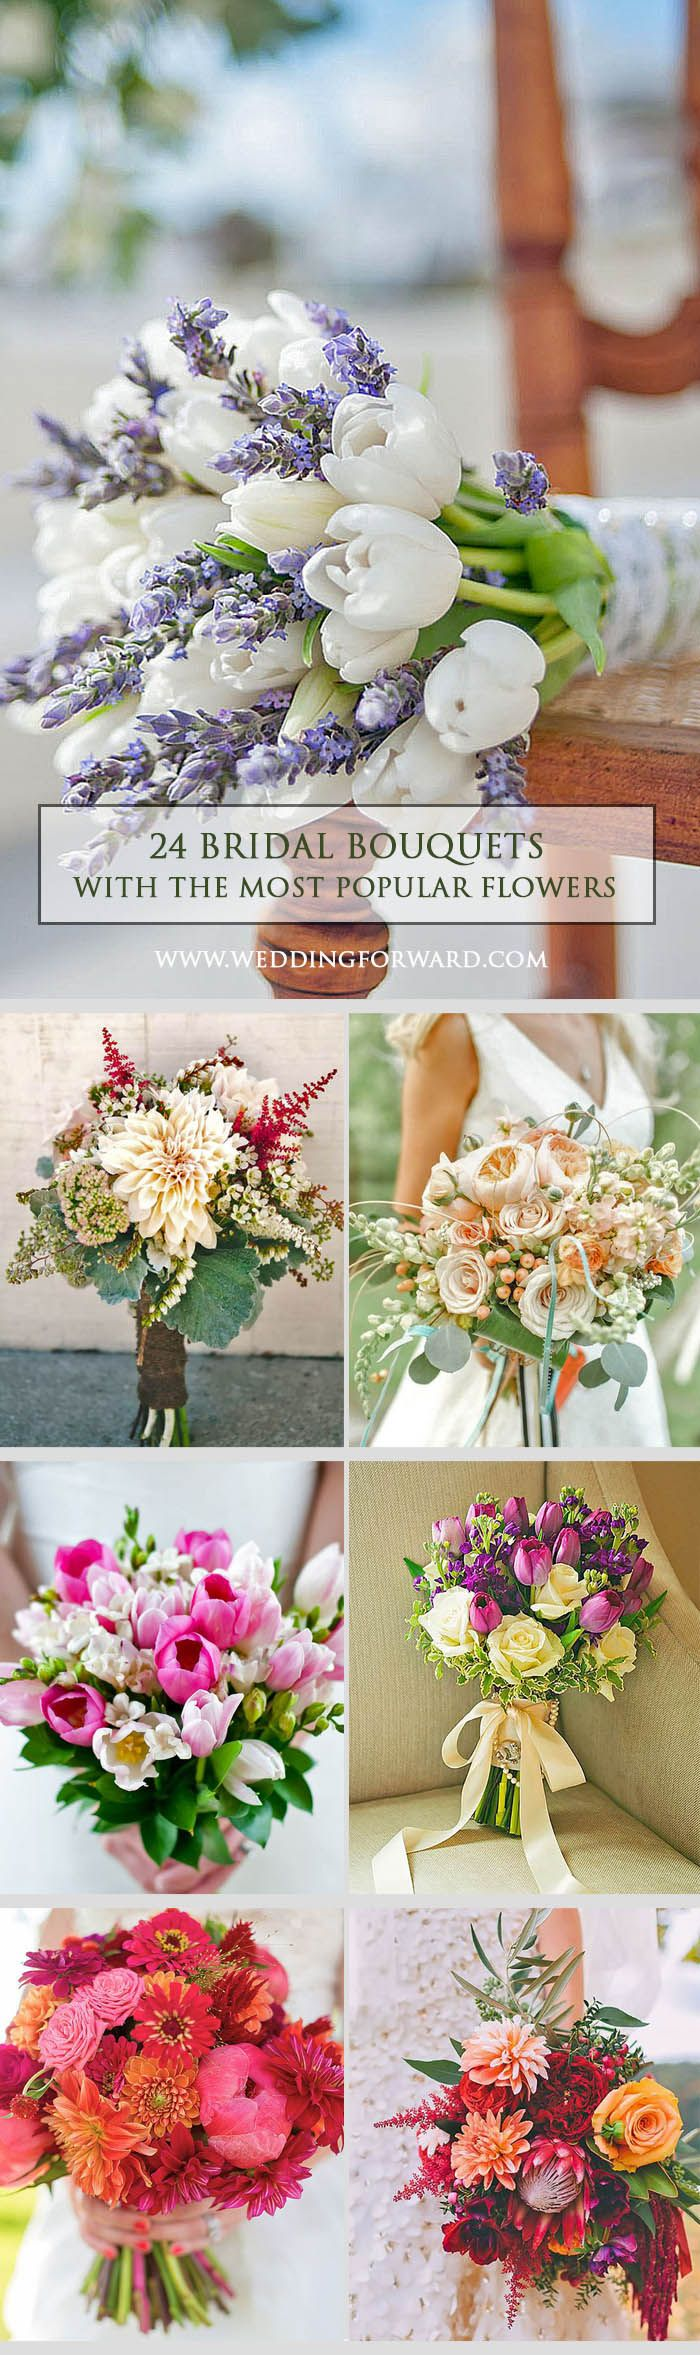 24 Most Popular Wedding Flowers In Bridal Bouquets ❤ When it comes to research of most popular wedding flowers, the task might be little difficult. But for sure you can decide which blooms you prefer. See more: http://www.weddingforward.com/popular-wedding-flowers/ #weddings #bouquets